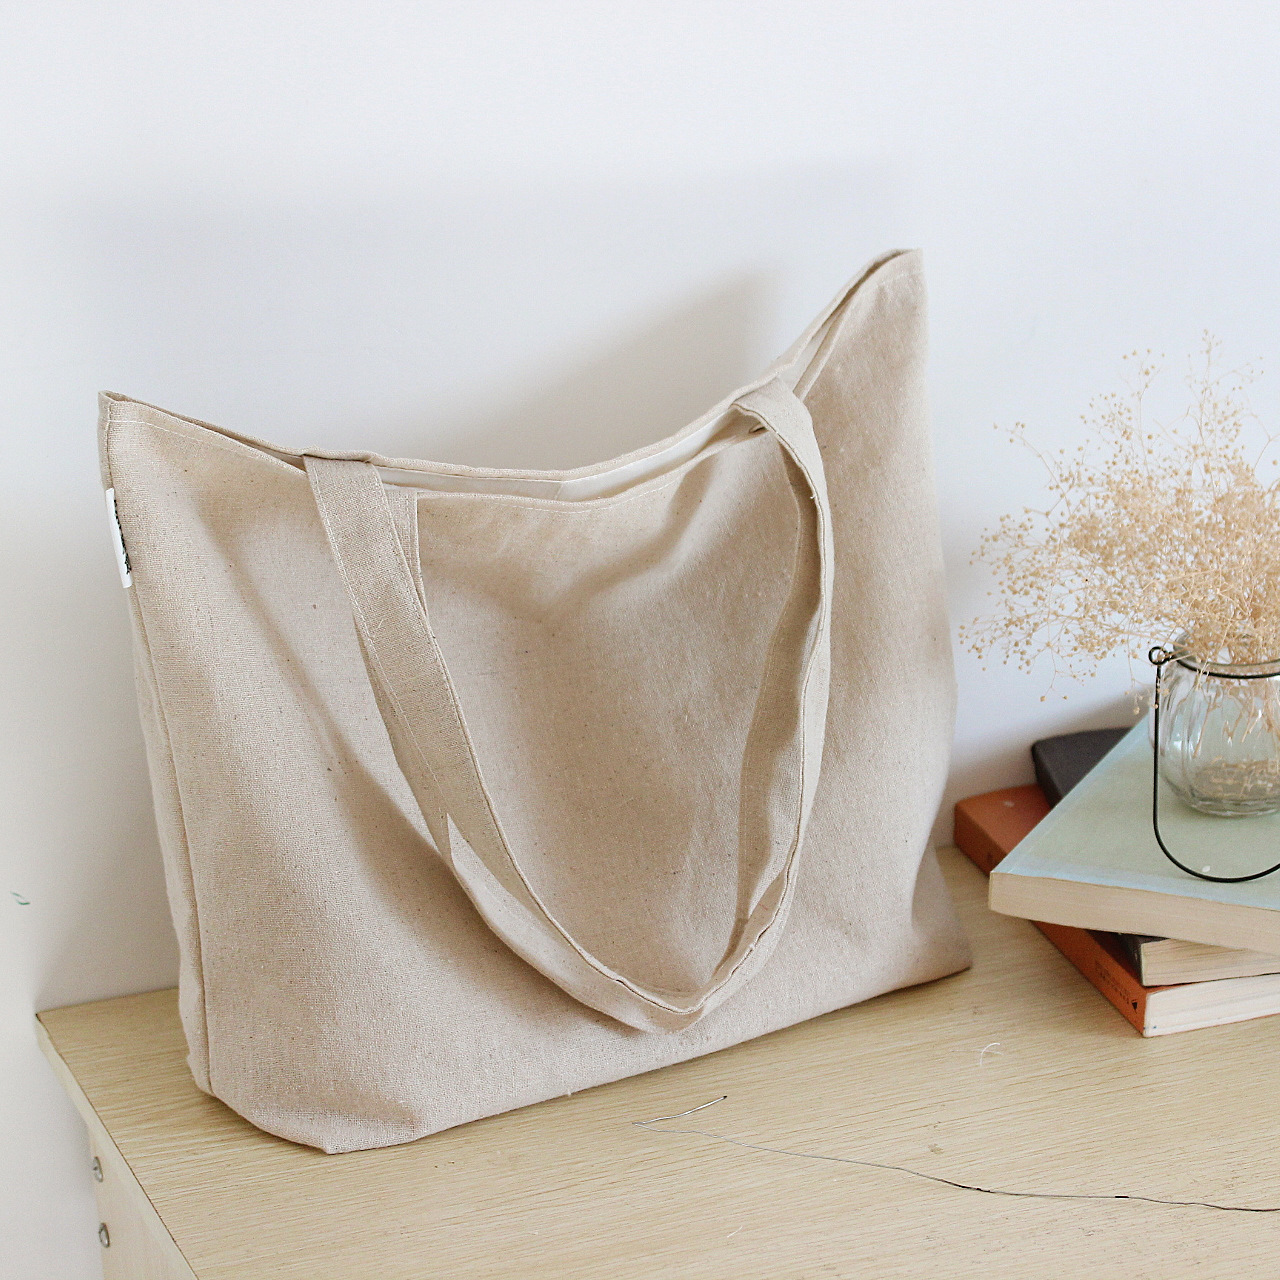 Blank Canvas Bag Plain Shoulder Bags Shopping Solid Shopper School Book Free Shipping In From Luggage On Aliexpress